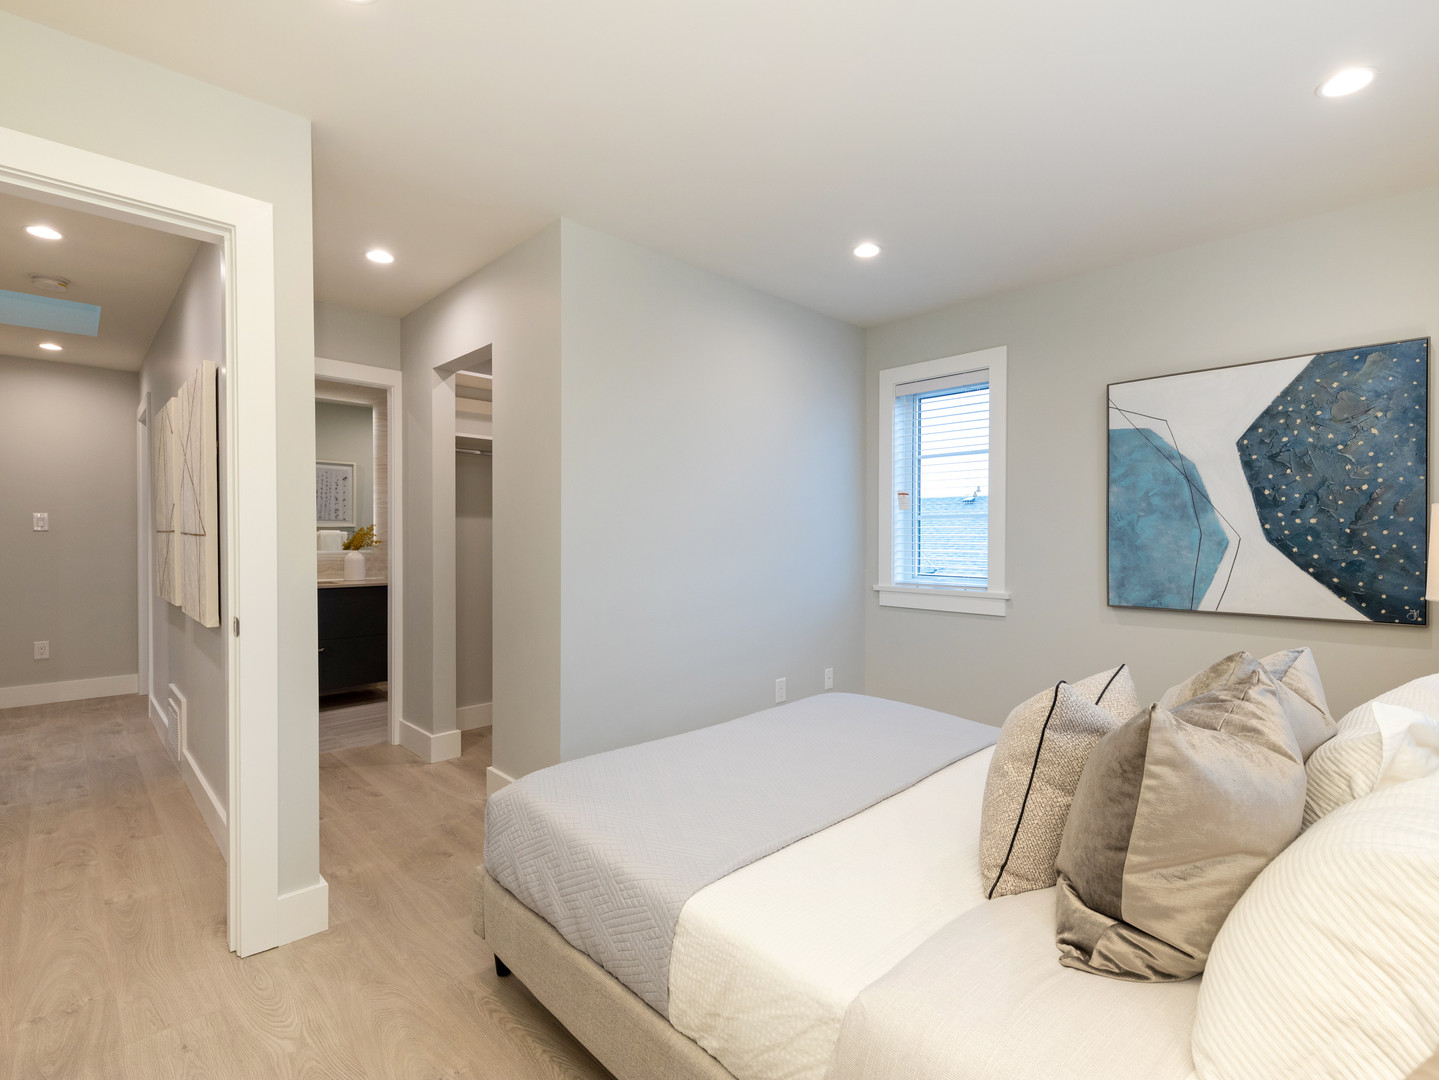 Master Bedroom in Villa Bleu Townhome